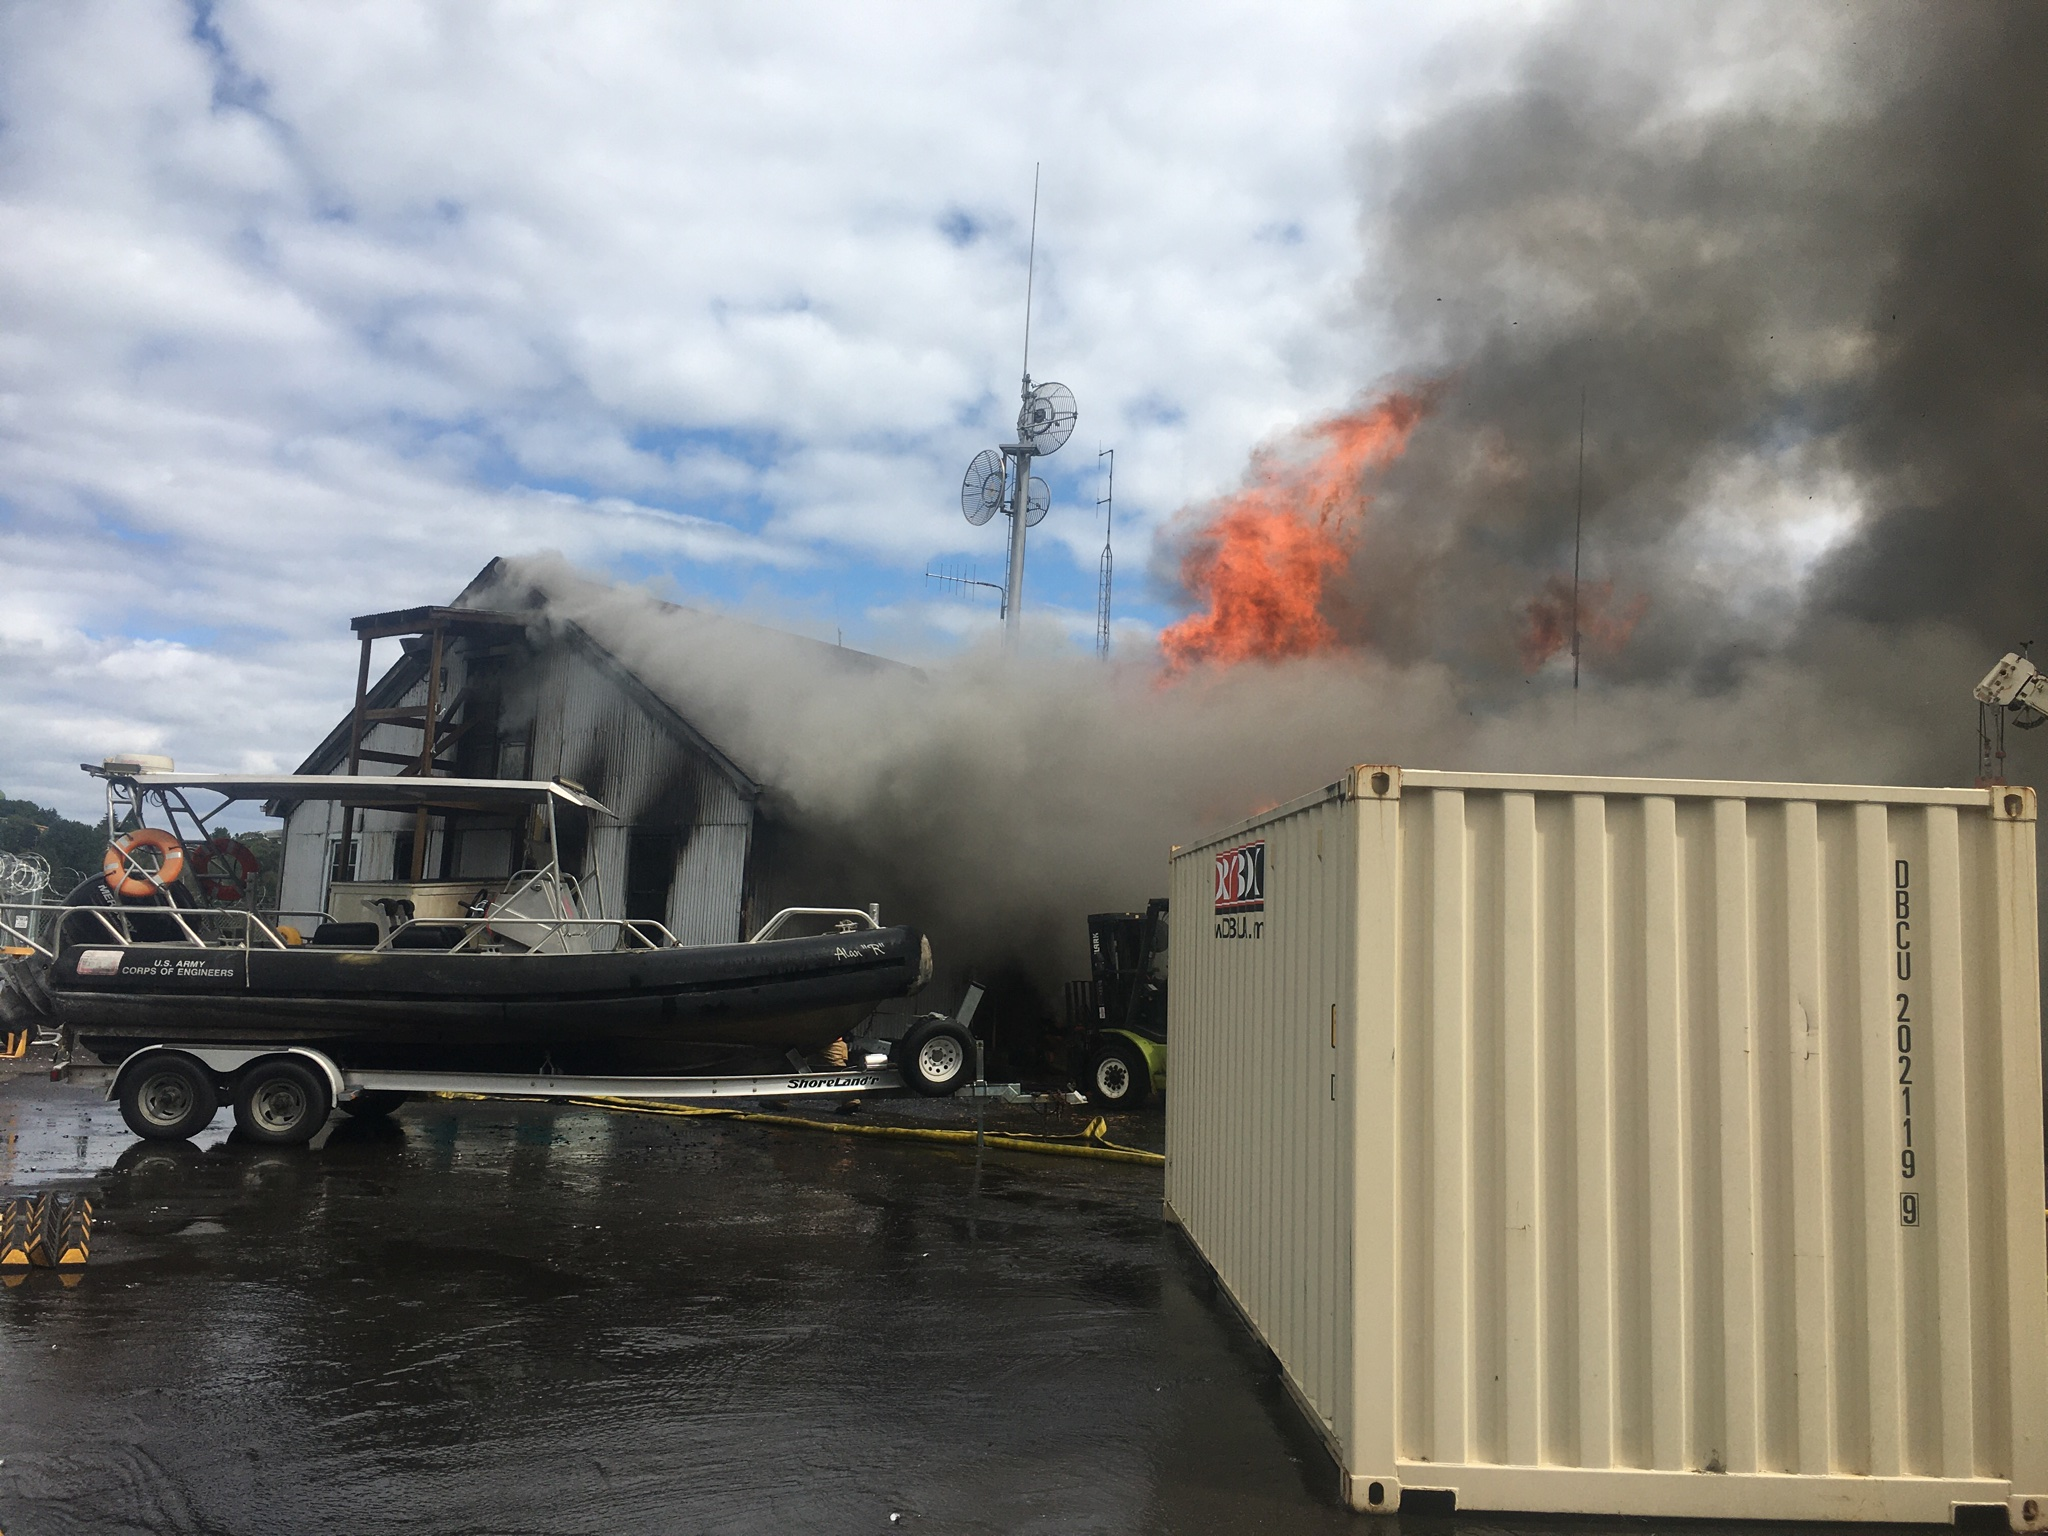 Army Corps of Engineers building burns in NW Portland